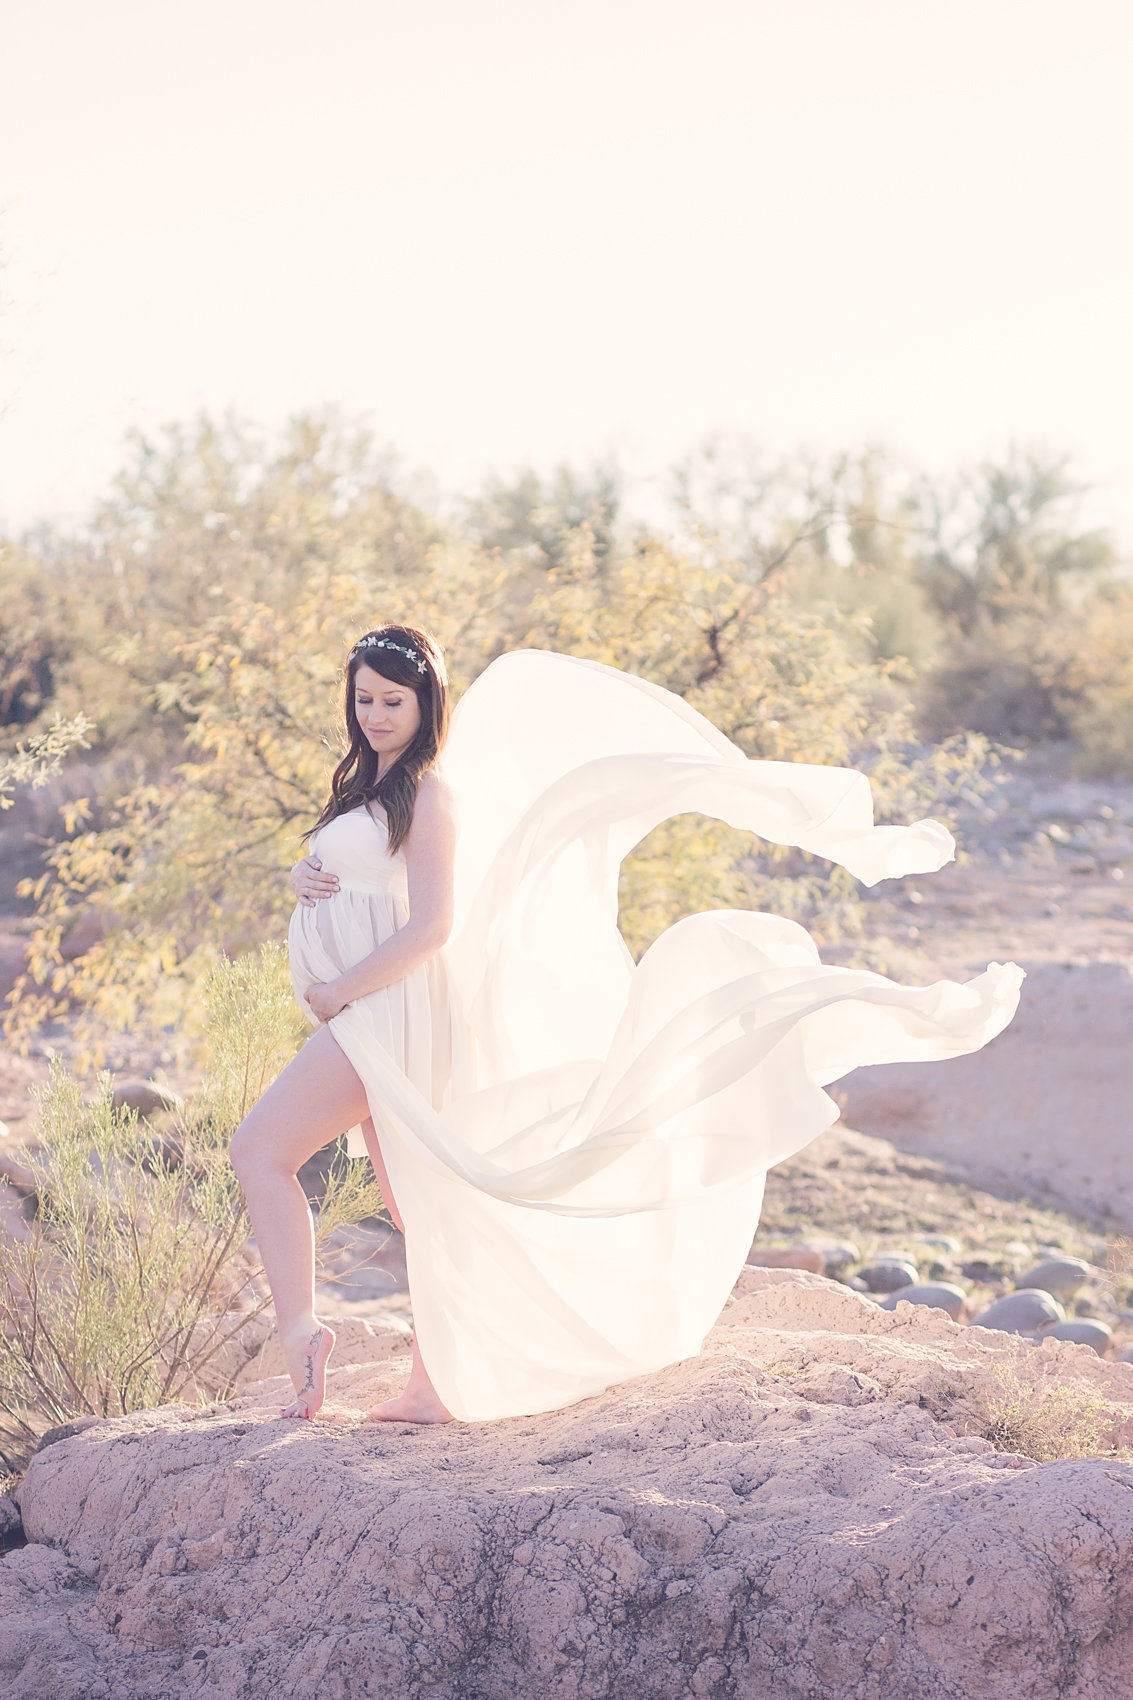 desert maternity session at rio verde river, arizona by plume designs and photography